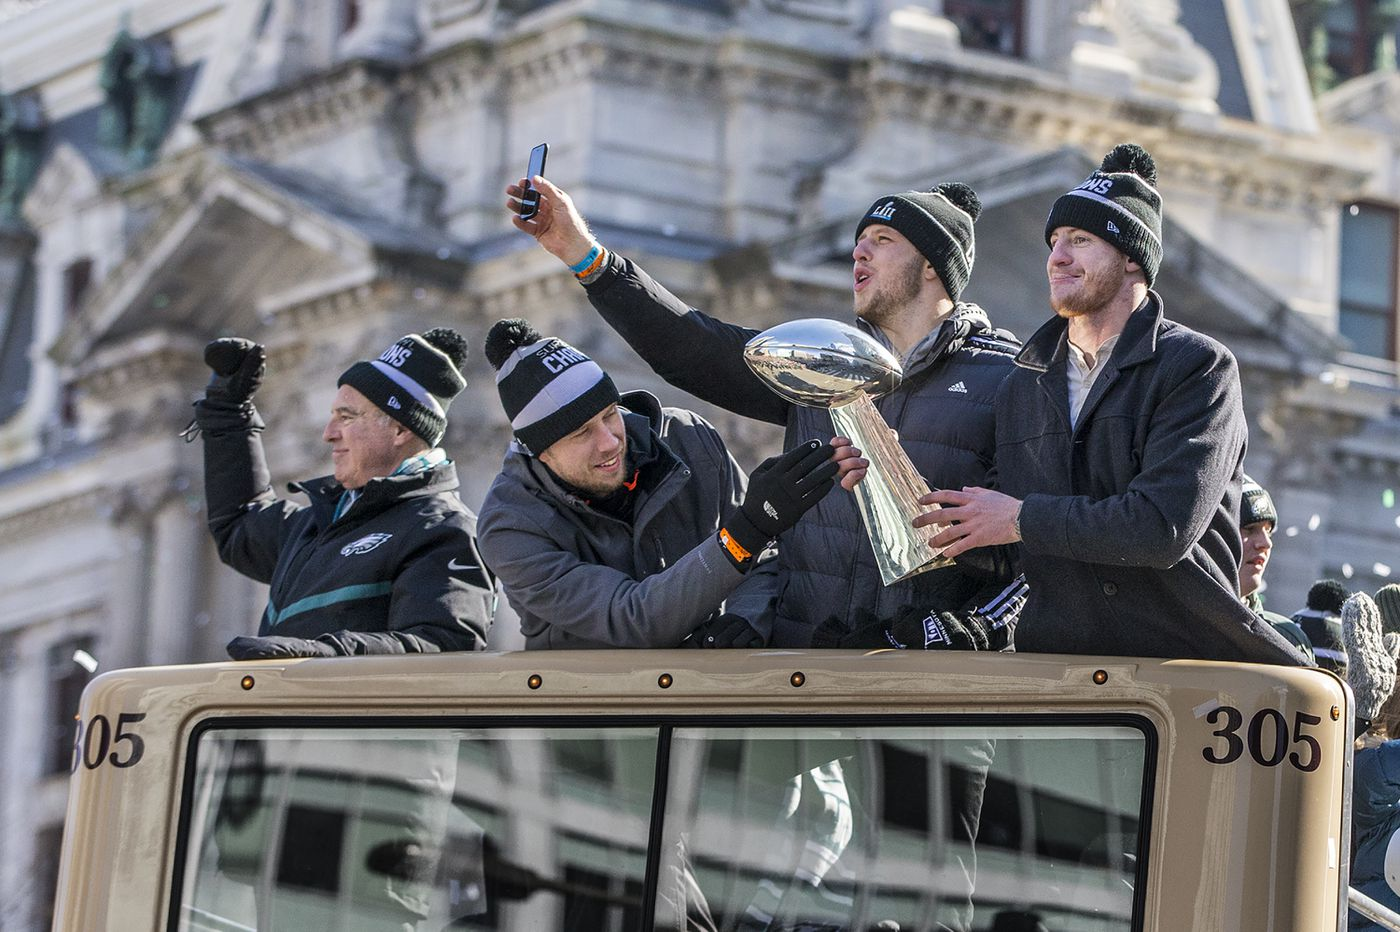 Eagles flying high above Trump's move to stifle free speech | Editorial